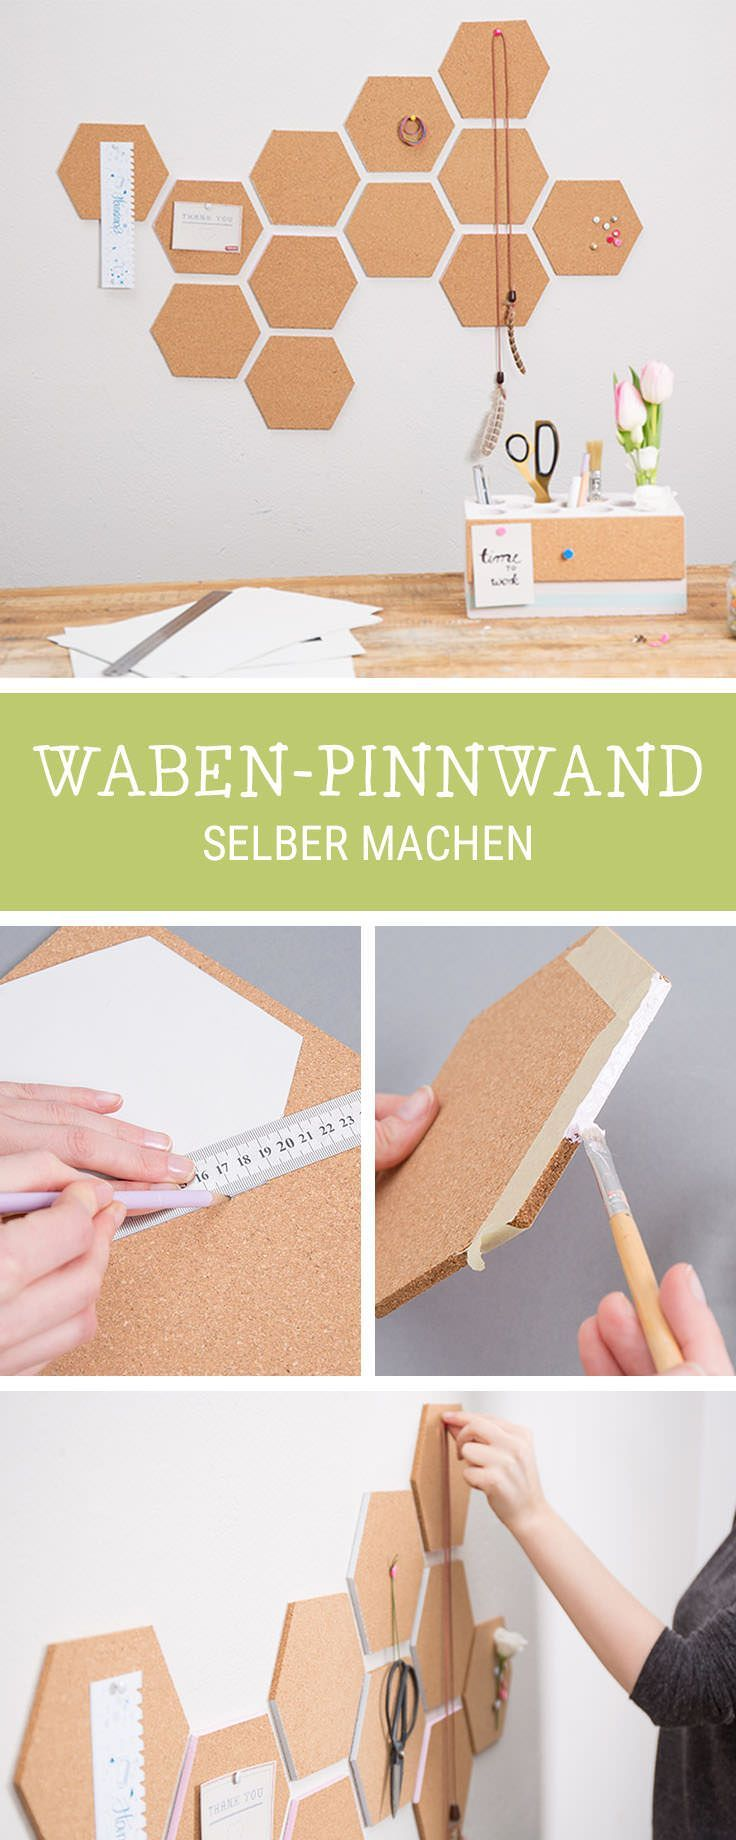 diy anleitung waben pinnwand aus kork selber machen via arbeitszimmer diy ideen. Black Bedroom Furniture Sets. Home Design Ideas